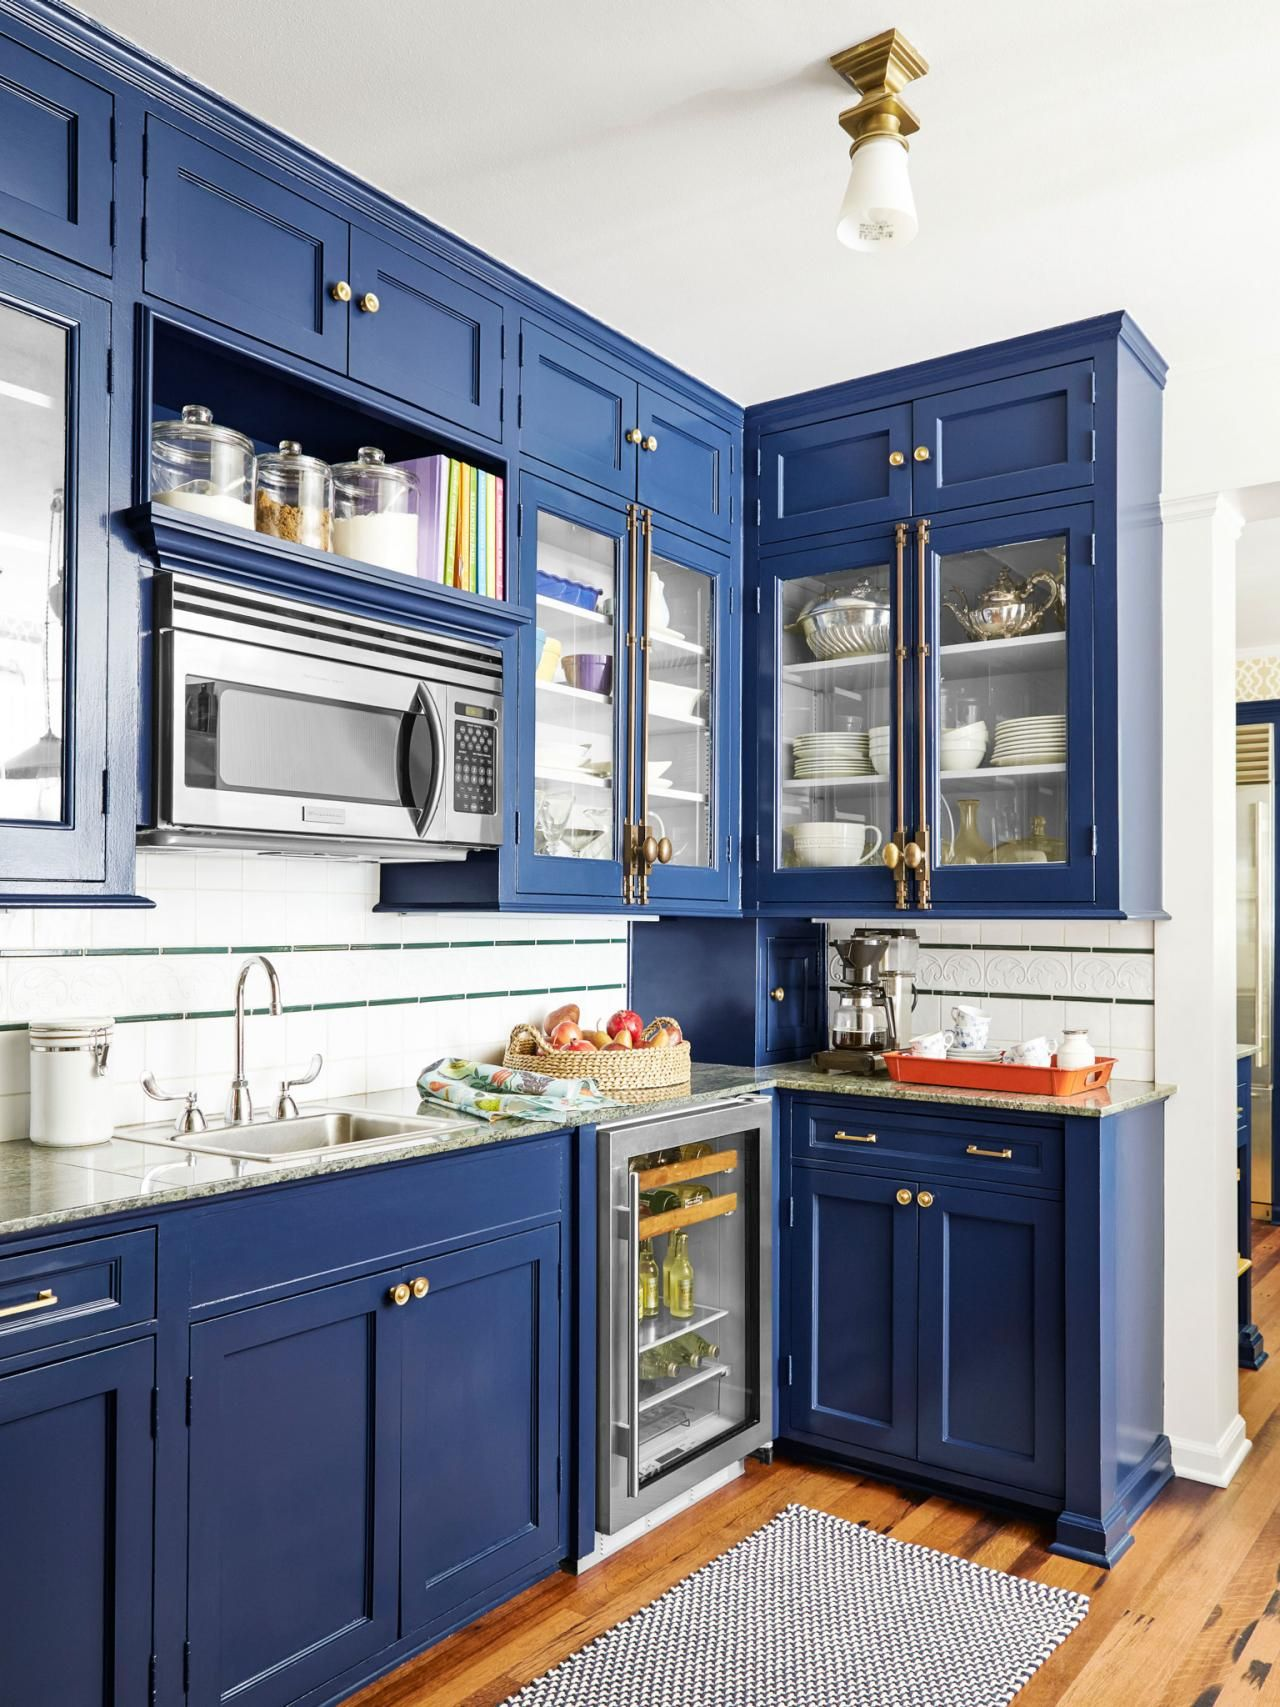 Hgtv Magazine Has The Tips And Tricks You Need To Know Properly Paint Cabinets